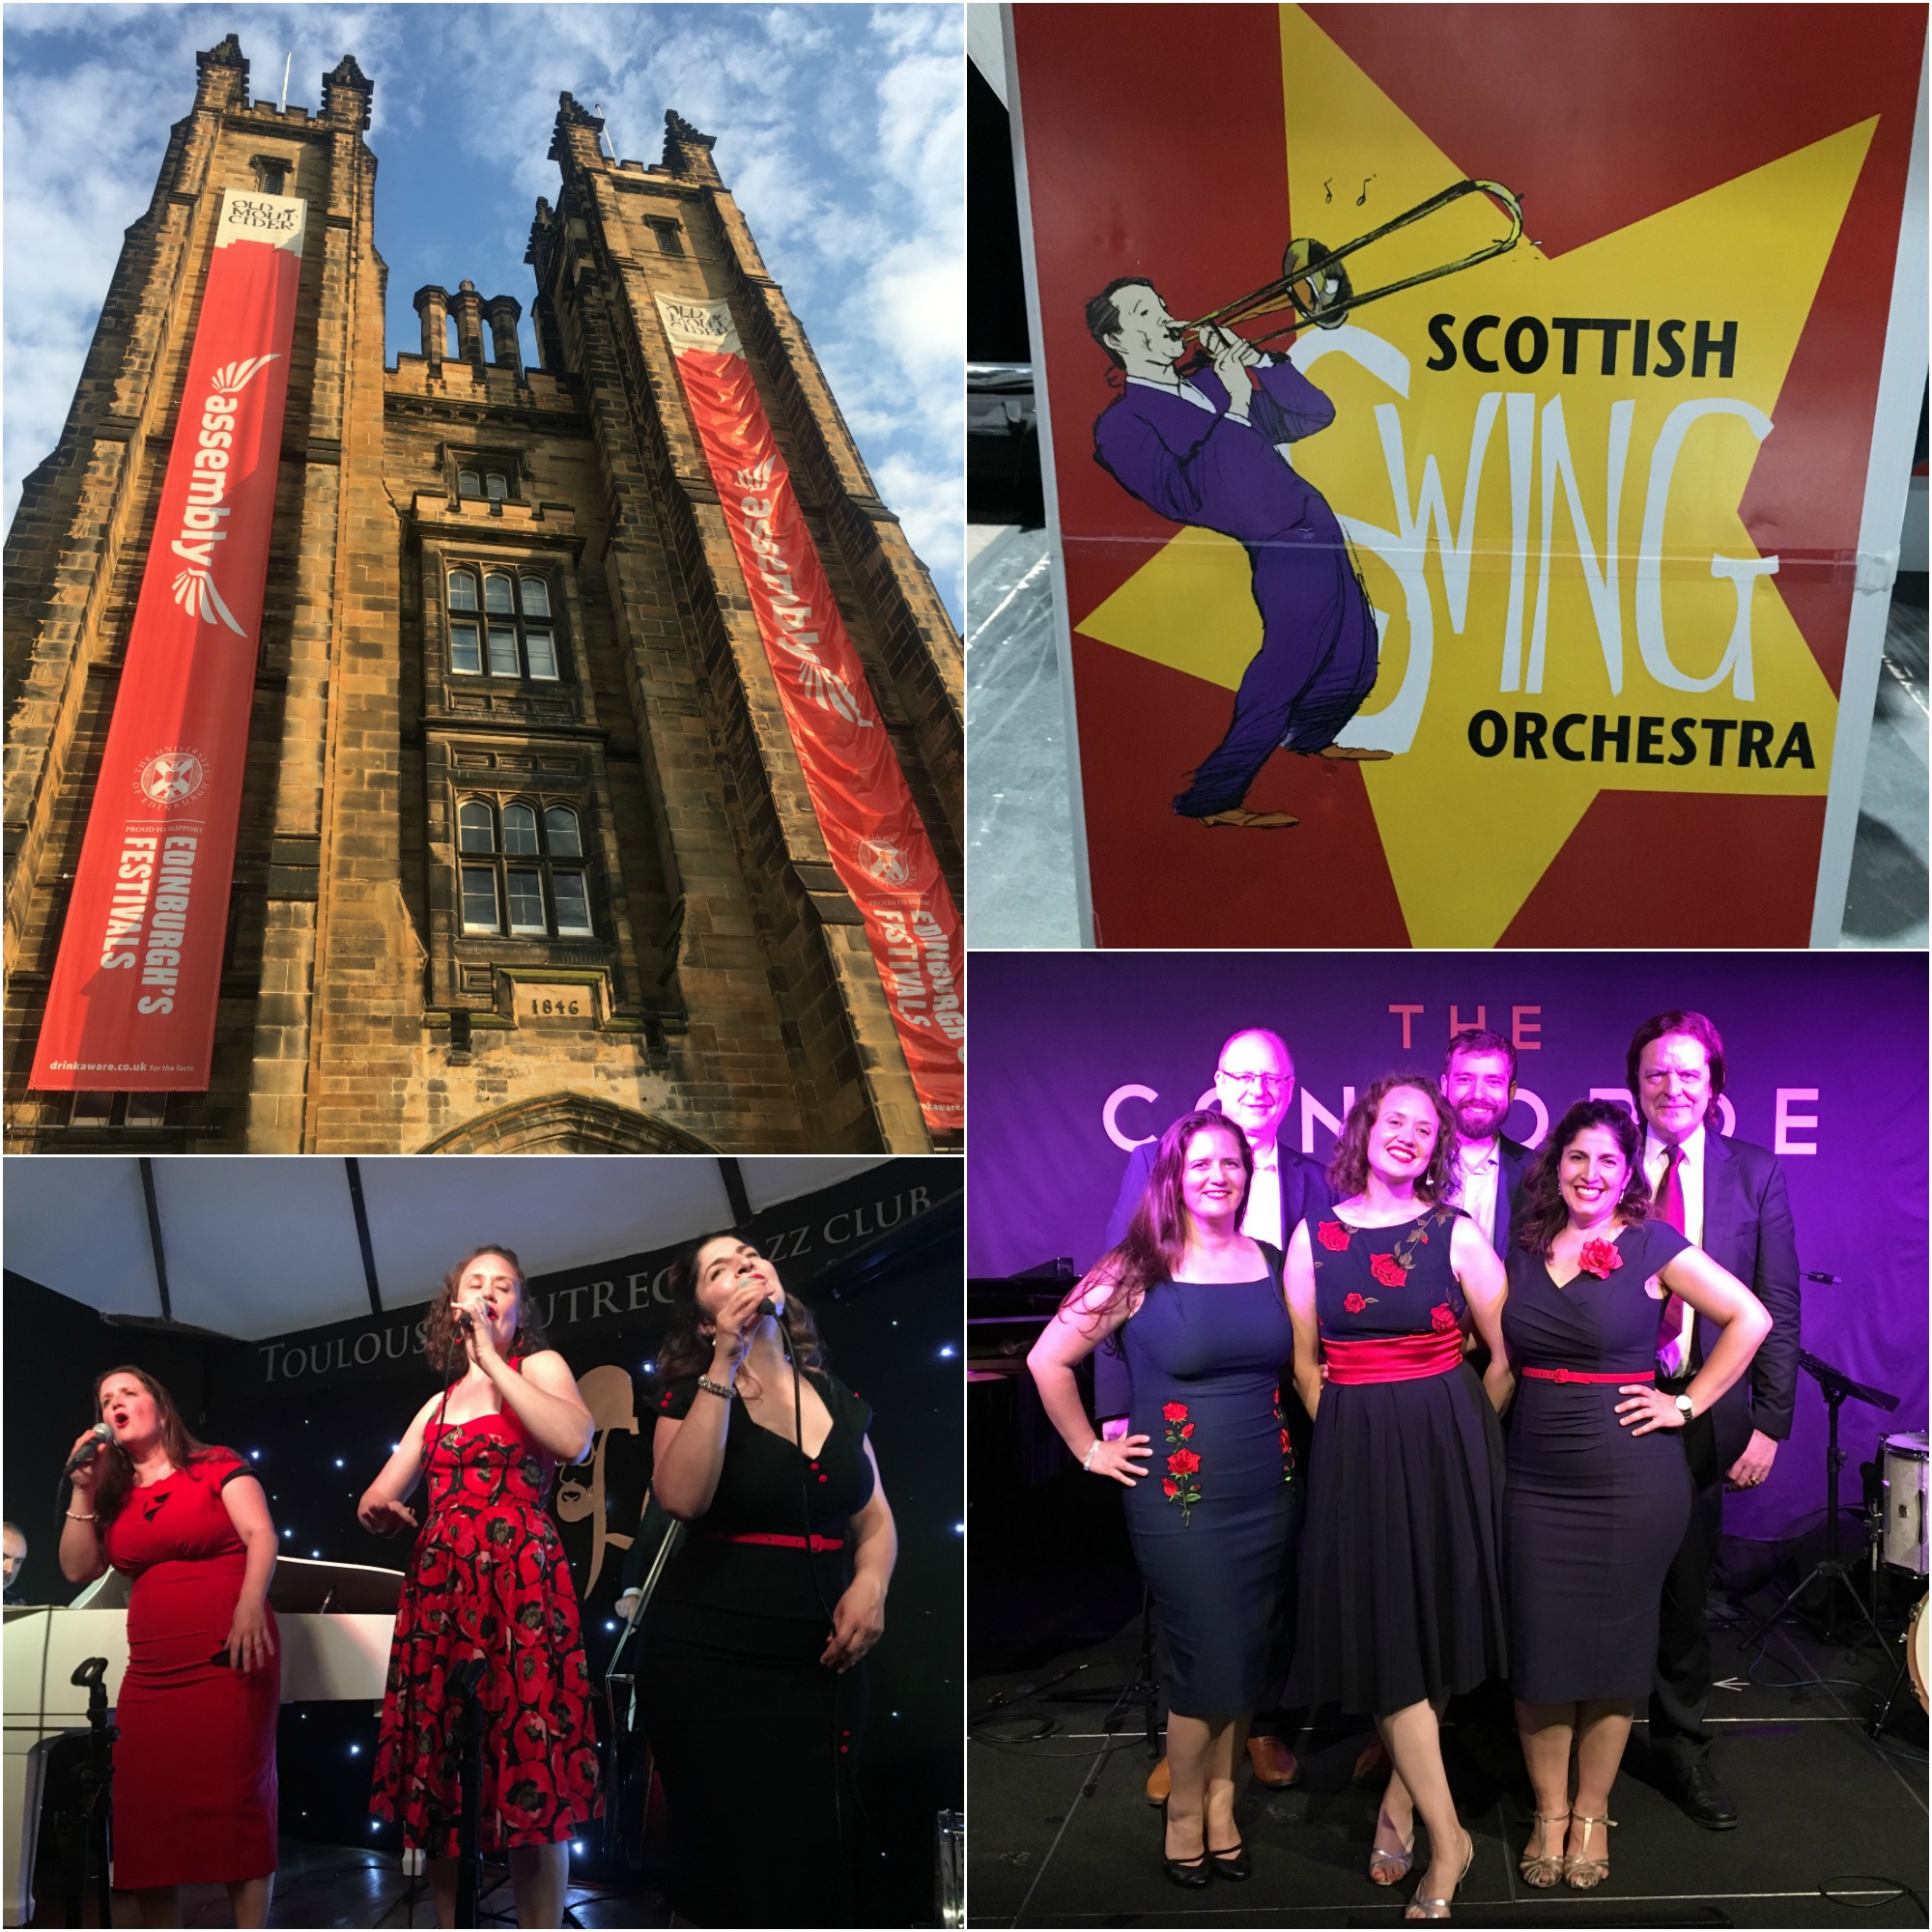 Clockwise, from top left: Assembly Hall in Edinburgh; Dave Batchelor's Scottish Swing Orchestra; all smiles at the Concorde Club with our band; our final show at Toulouse Lautrec in London.